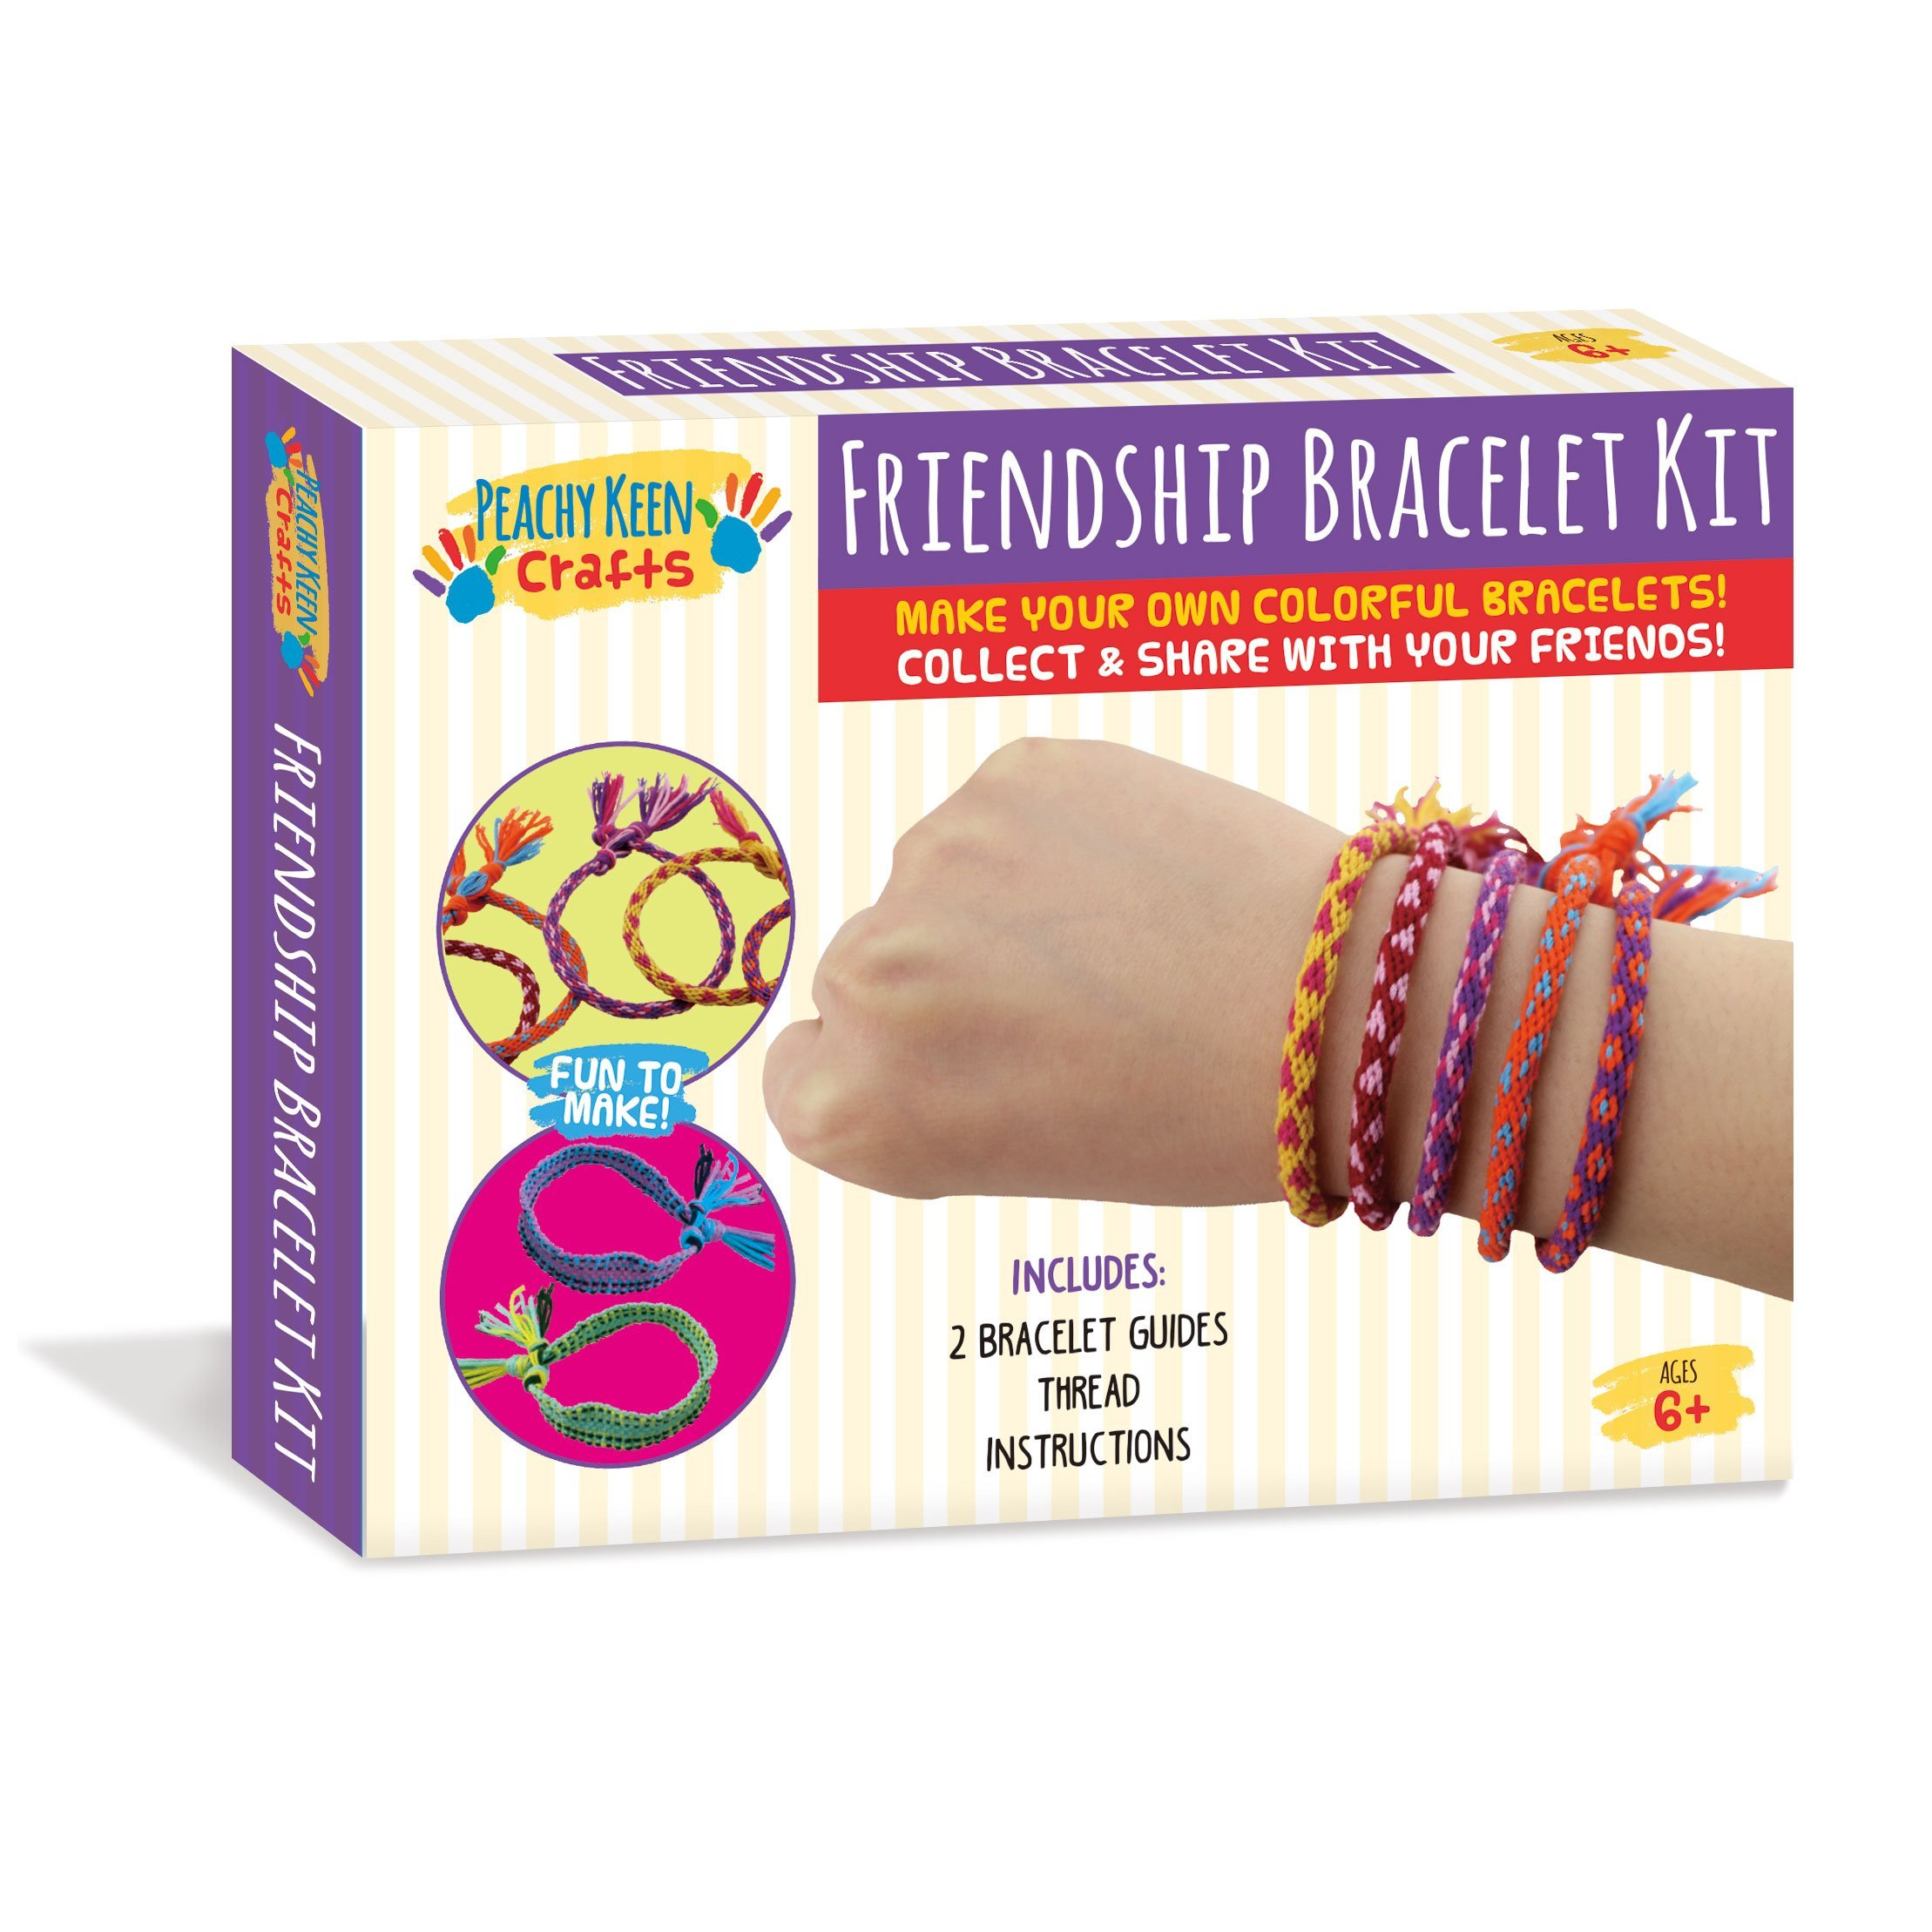 Peachy Keen Crafts Make Your Own Friendship Bracelet Kit - Complete DIY Jewelry Set With String for Kids